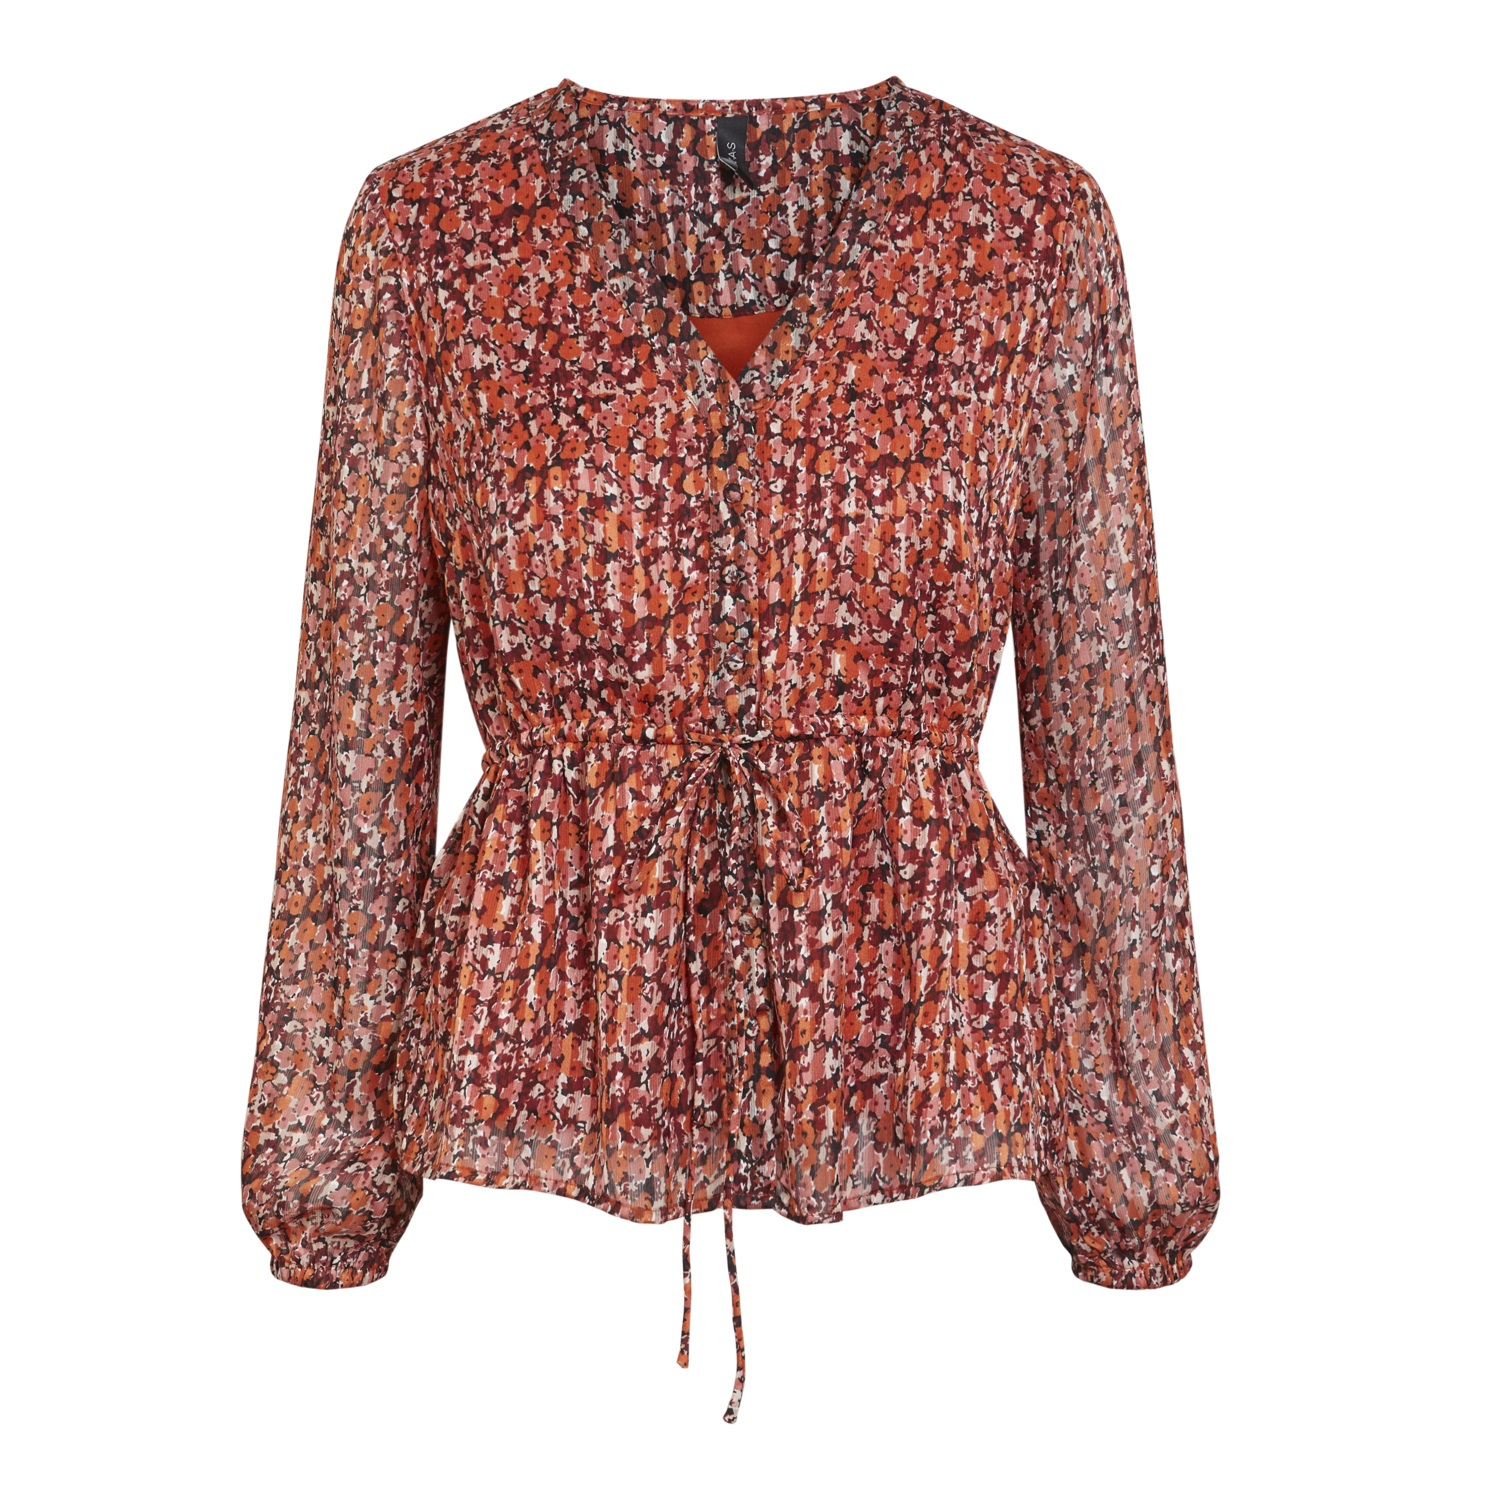 SALE Cabana Blouse was  £48